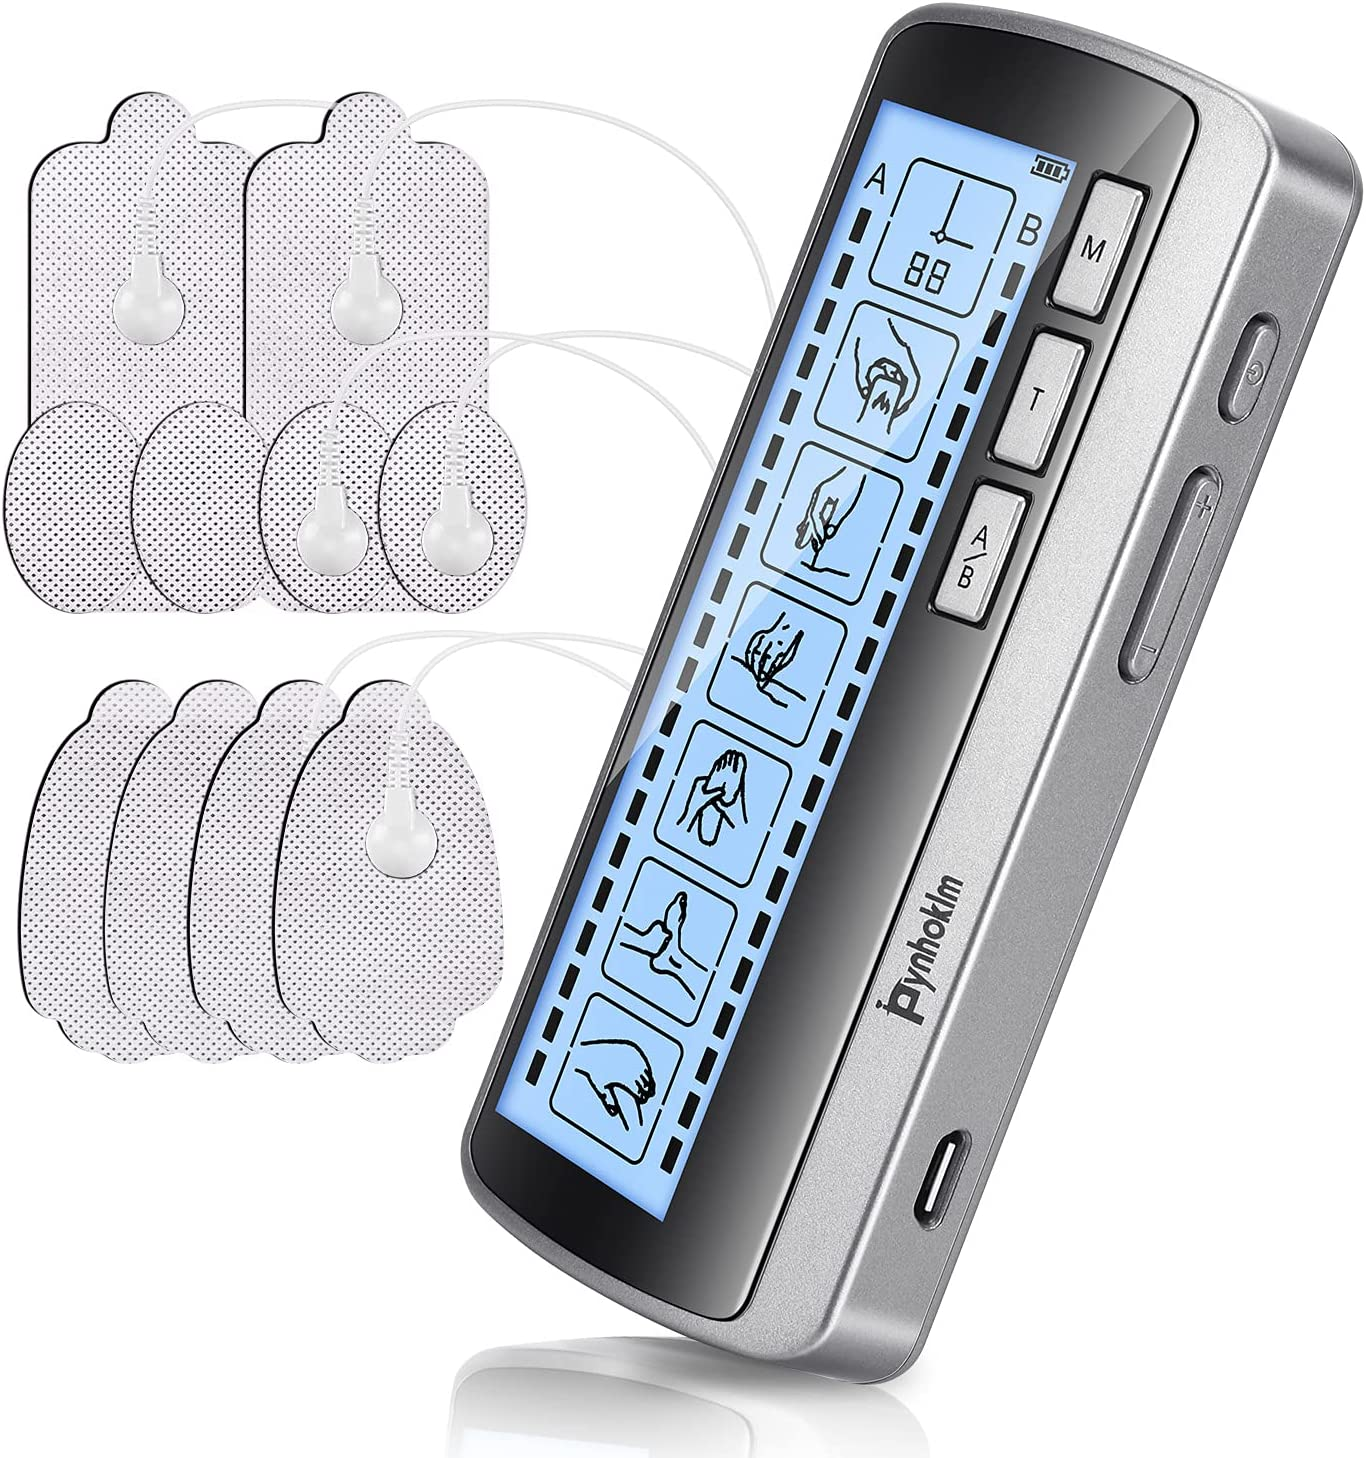 Pynhoklm Dual Channel TENS EMS Max 55% OFF Rechargeable 2021 new Stimulat Unit Muscle